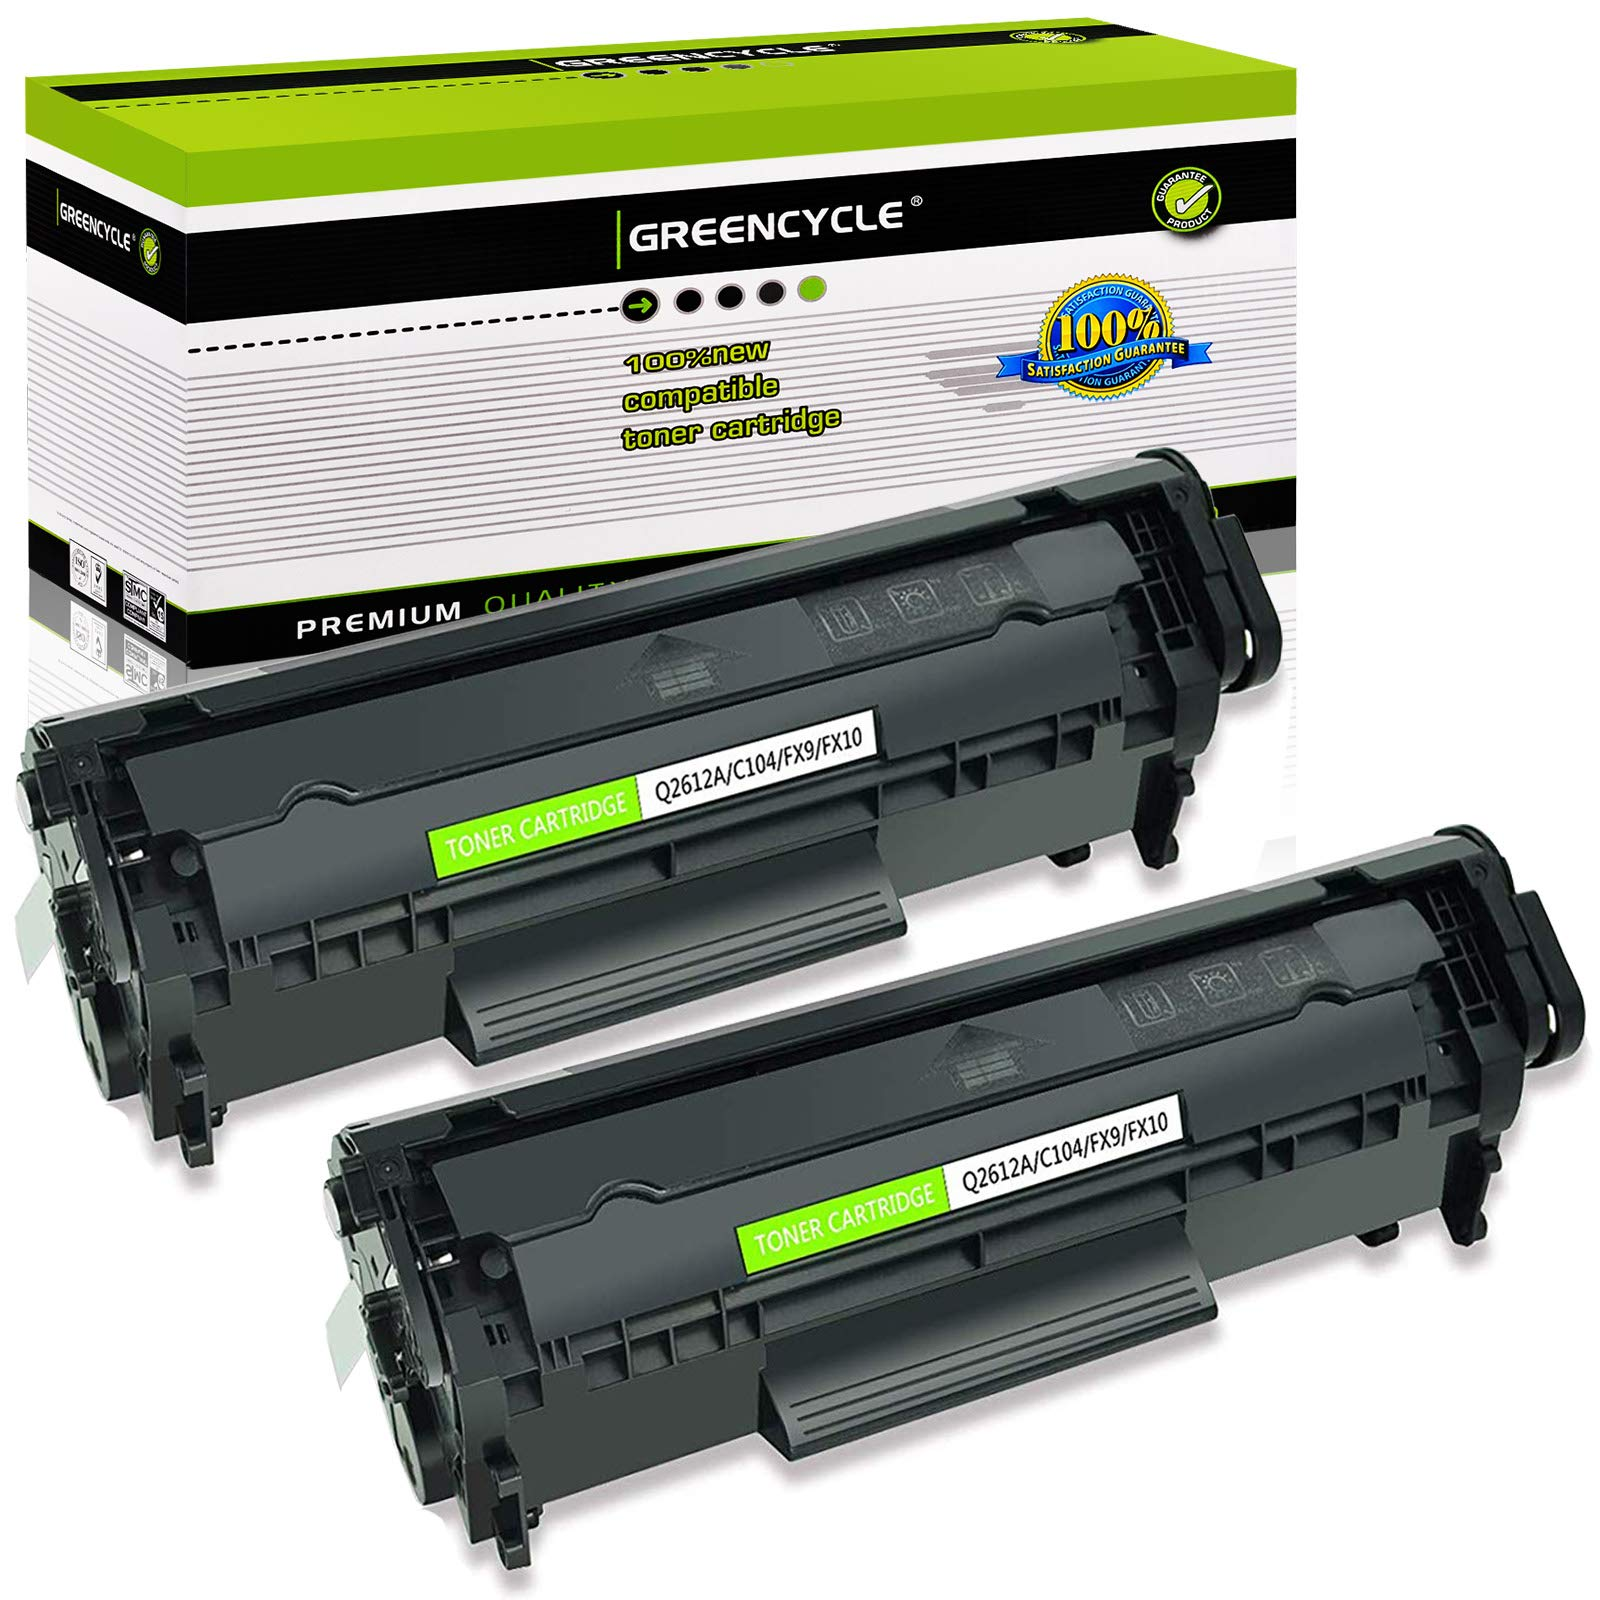 GREENCYCLE 2 Pack Compatible for Canon 104 FX-10 FX-9 104 Toner Cartridge for Faxphone Printer L90 L120 LBP-2900 LBP-3000